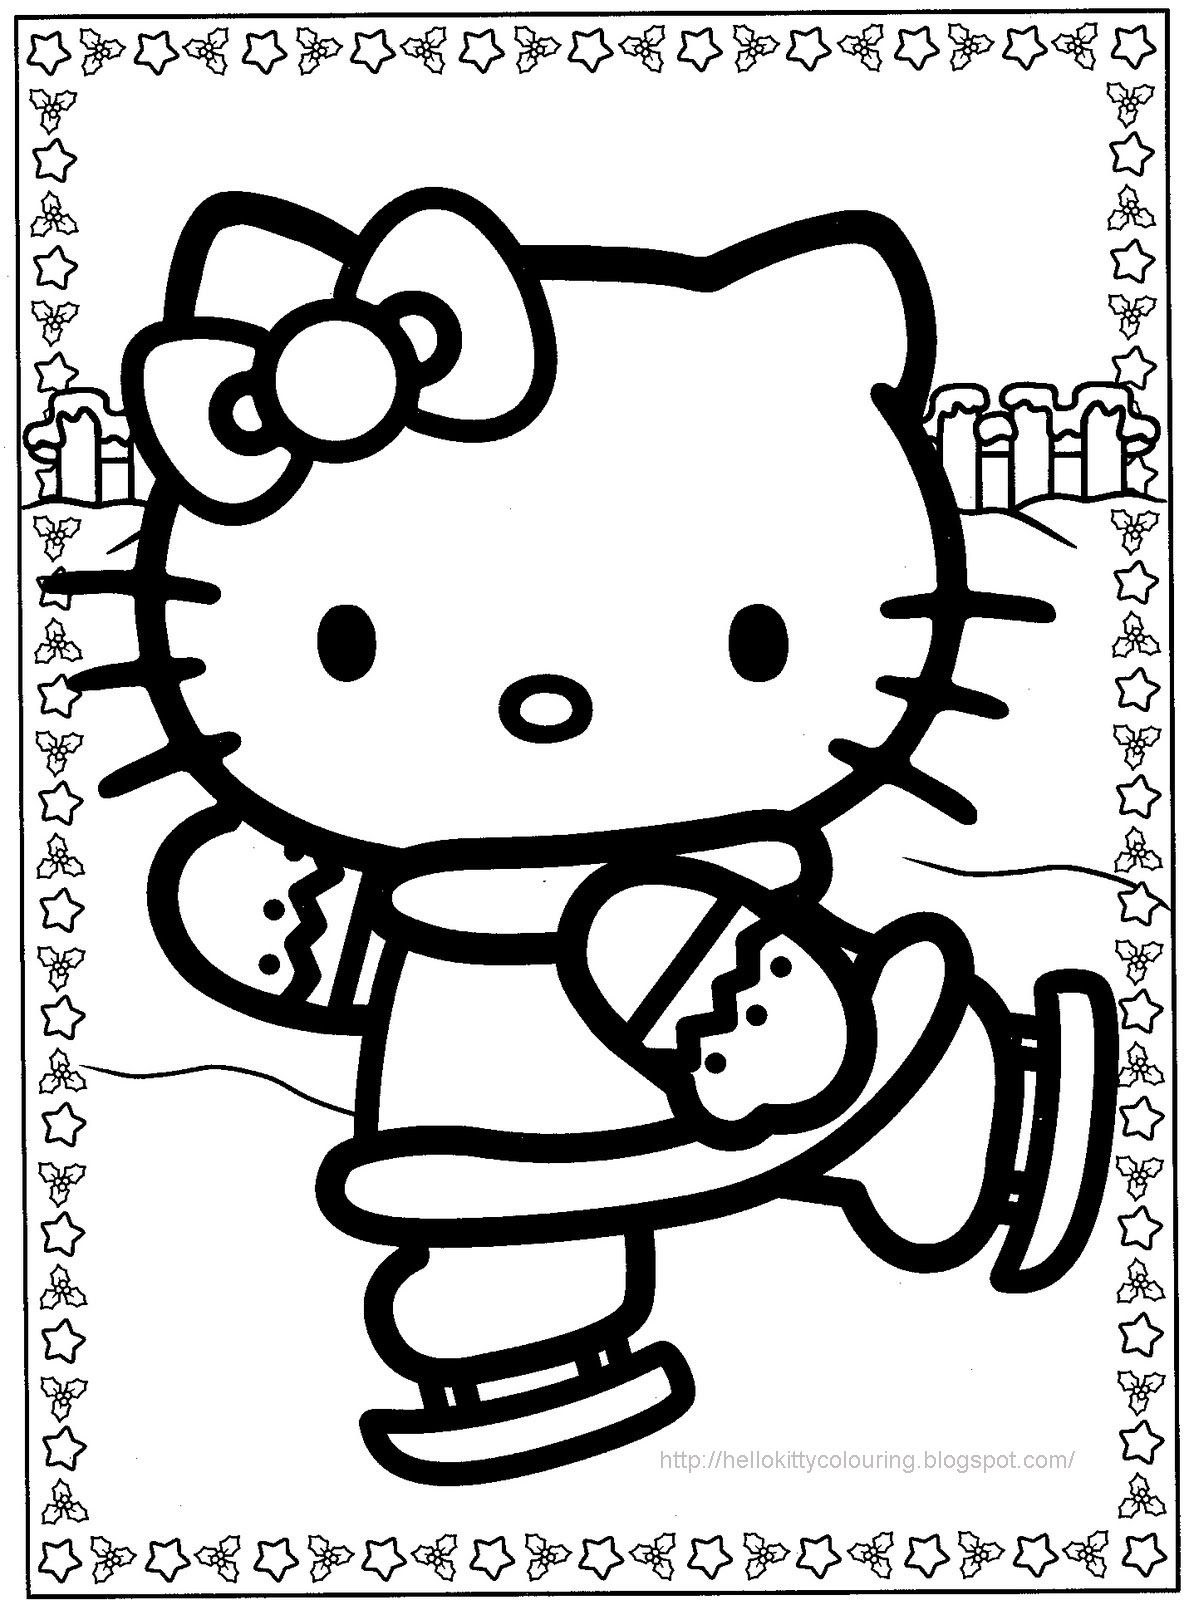 Coloring pages for christmas - Hello Kitty Christmas Coloring Page